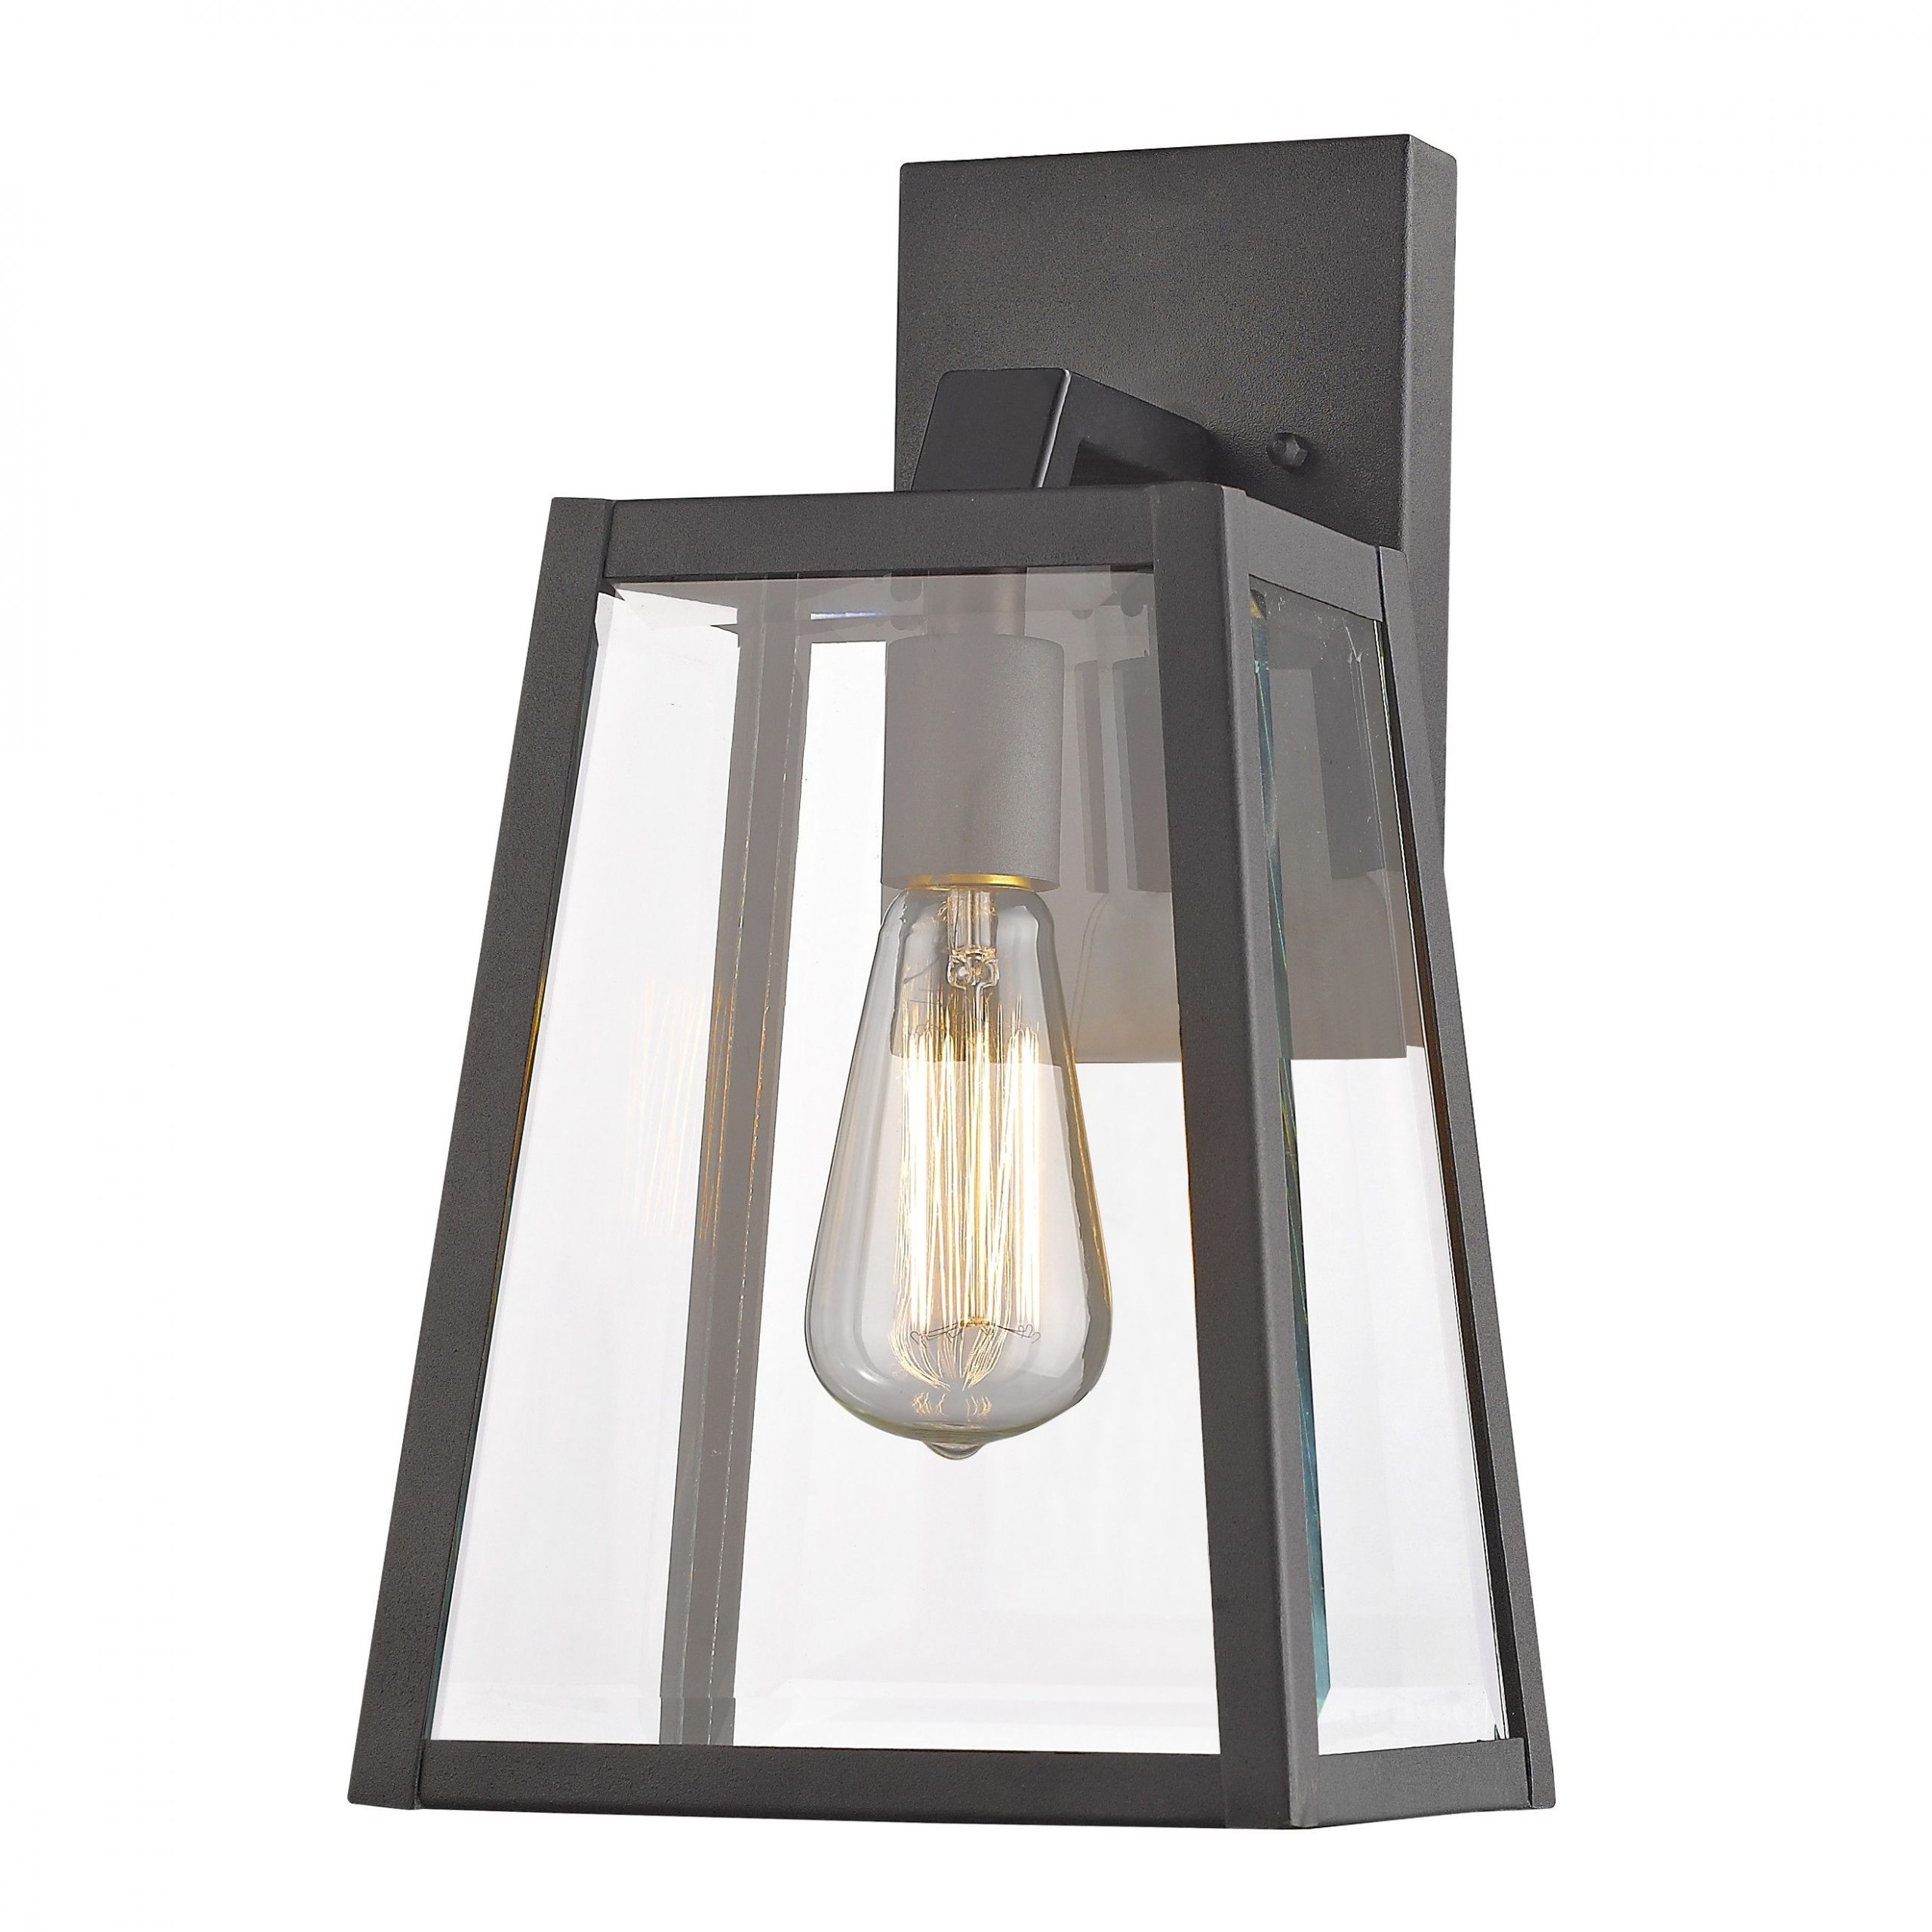 Mcdonough Wall Lanterns Inside Most Current Mercury Row Brill 1 Light Outdoor Wall Lantern (View 3 of 15)